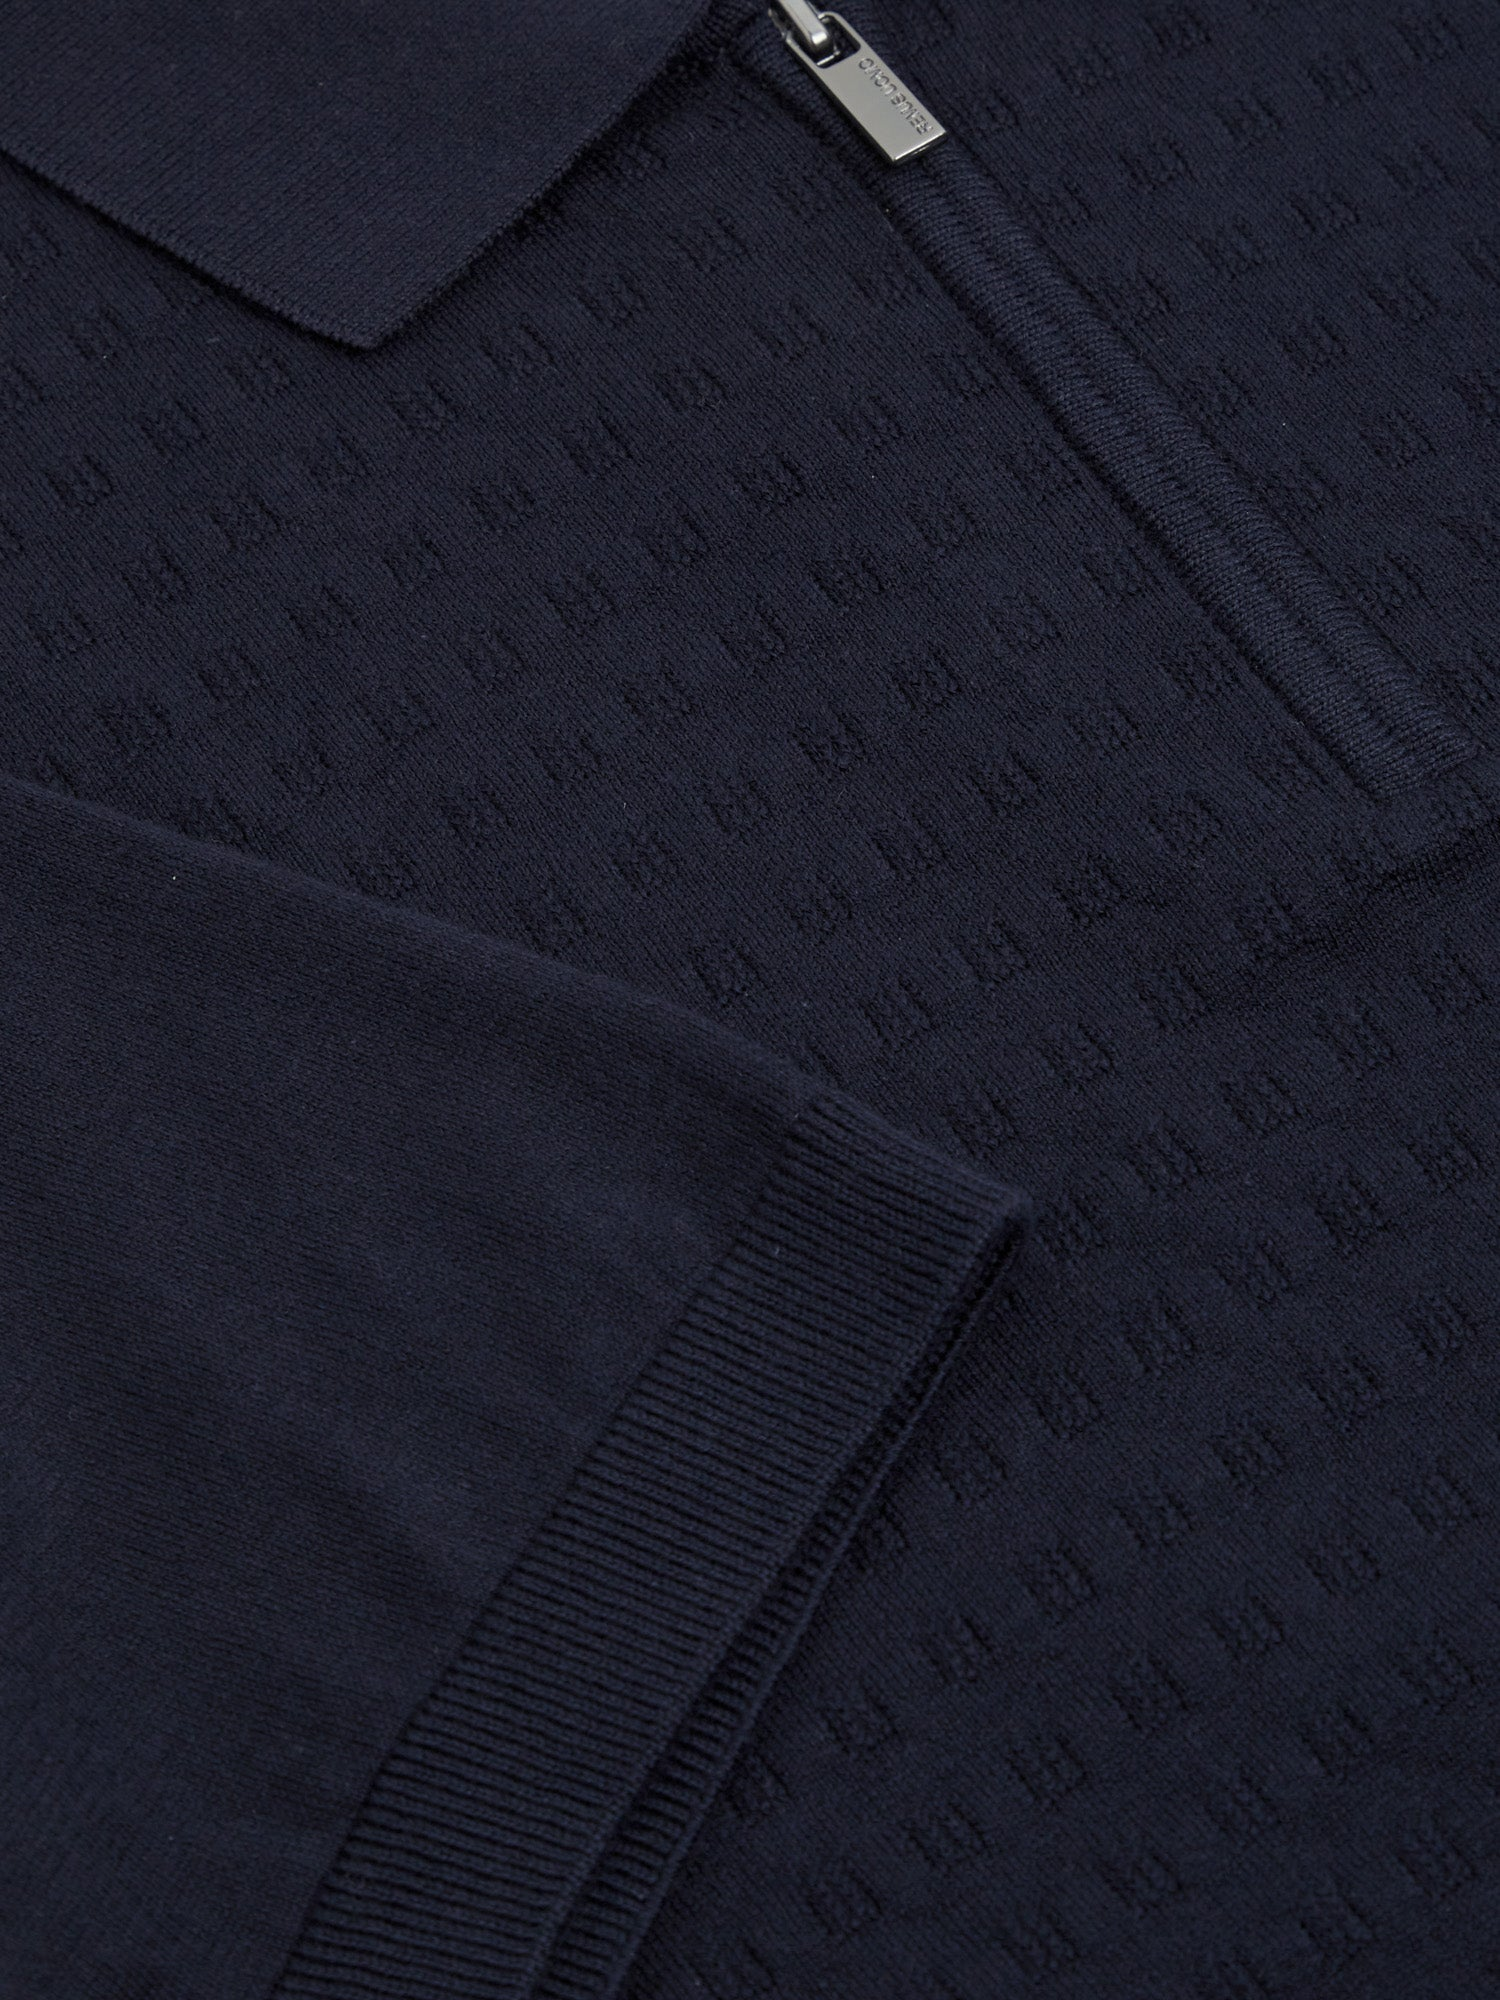 Navy Textured Waffle Pattern Knitted Polo Shirt